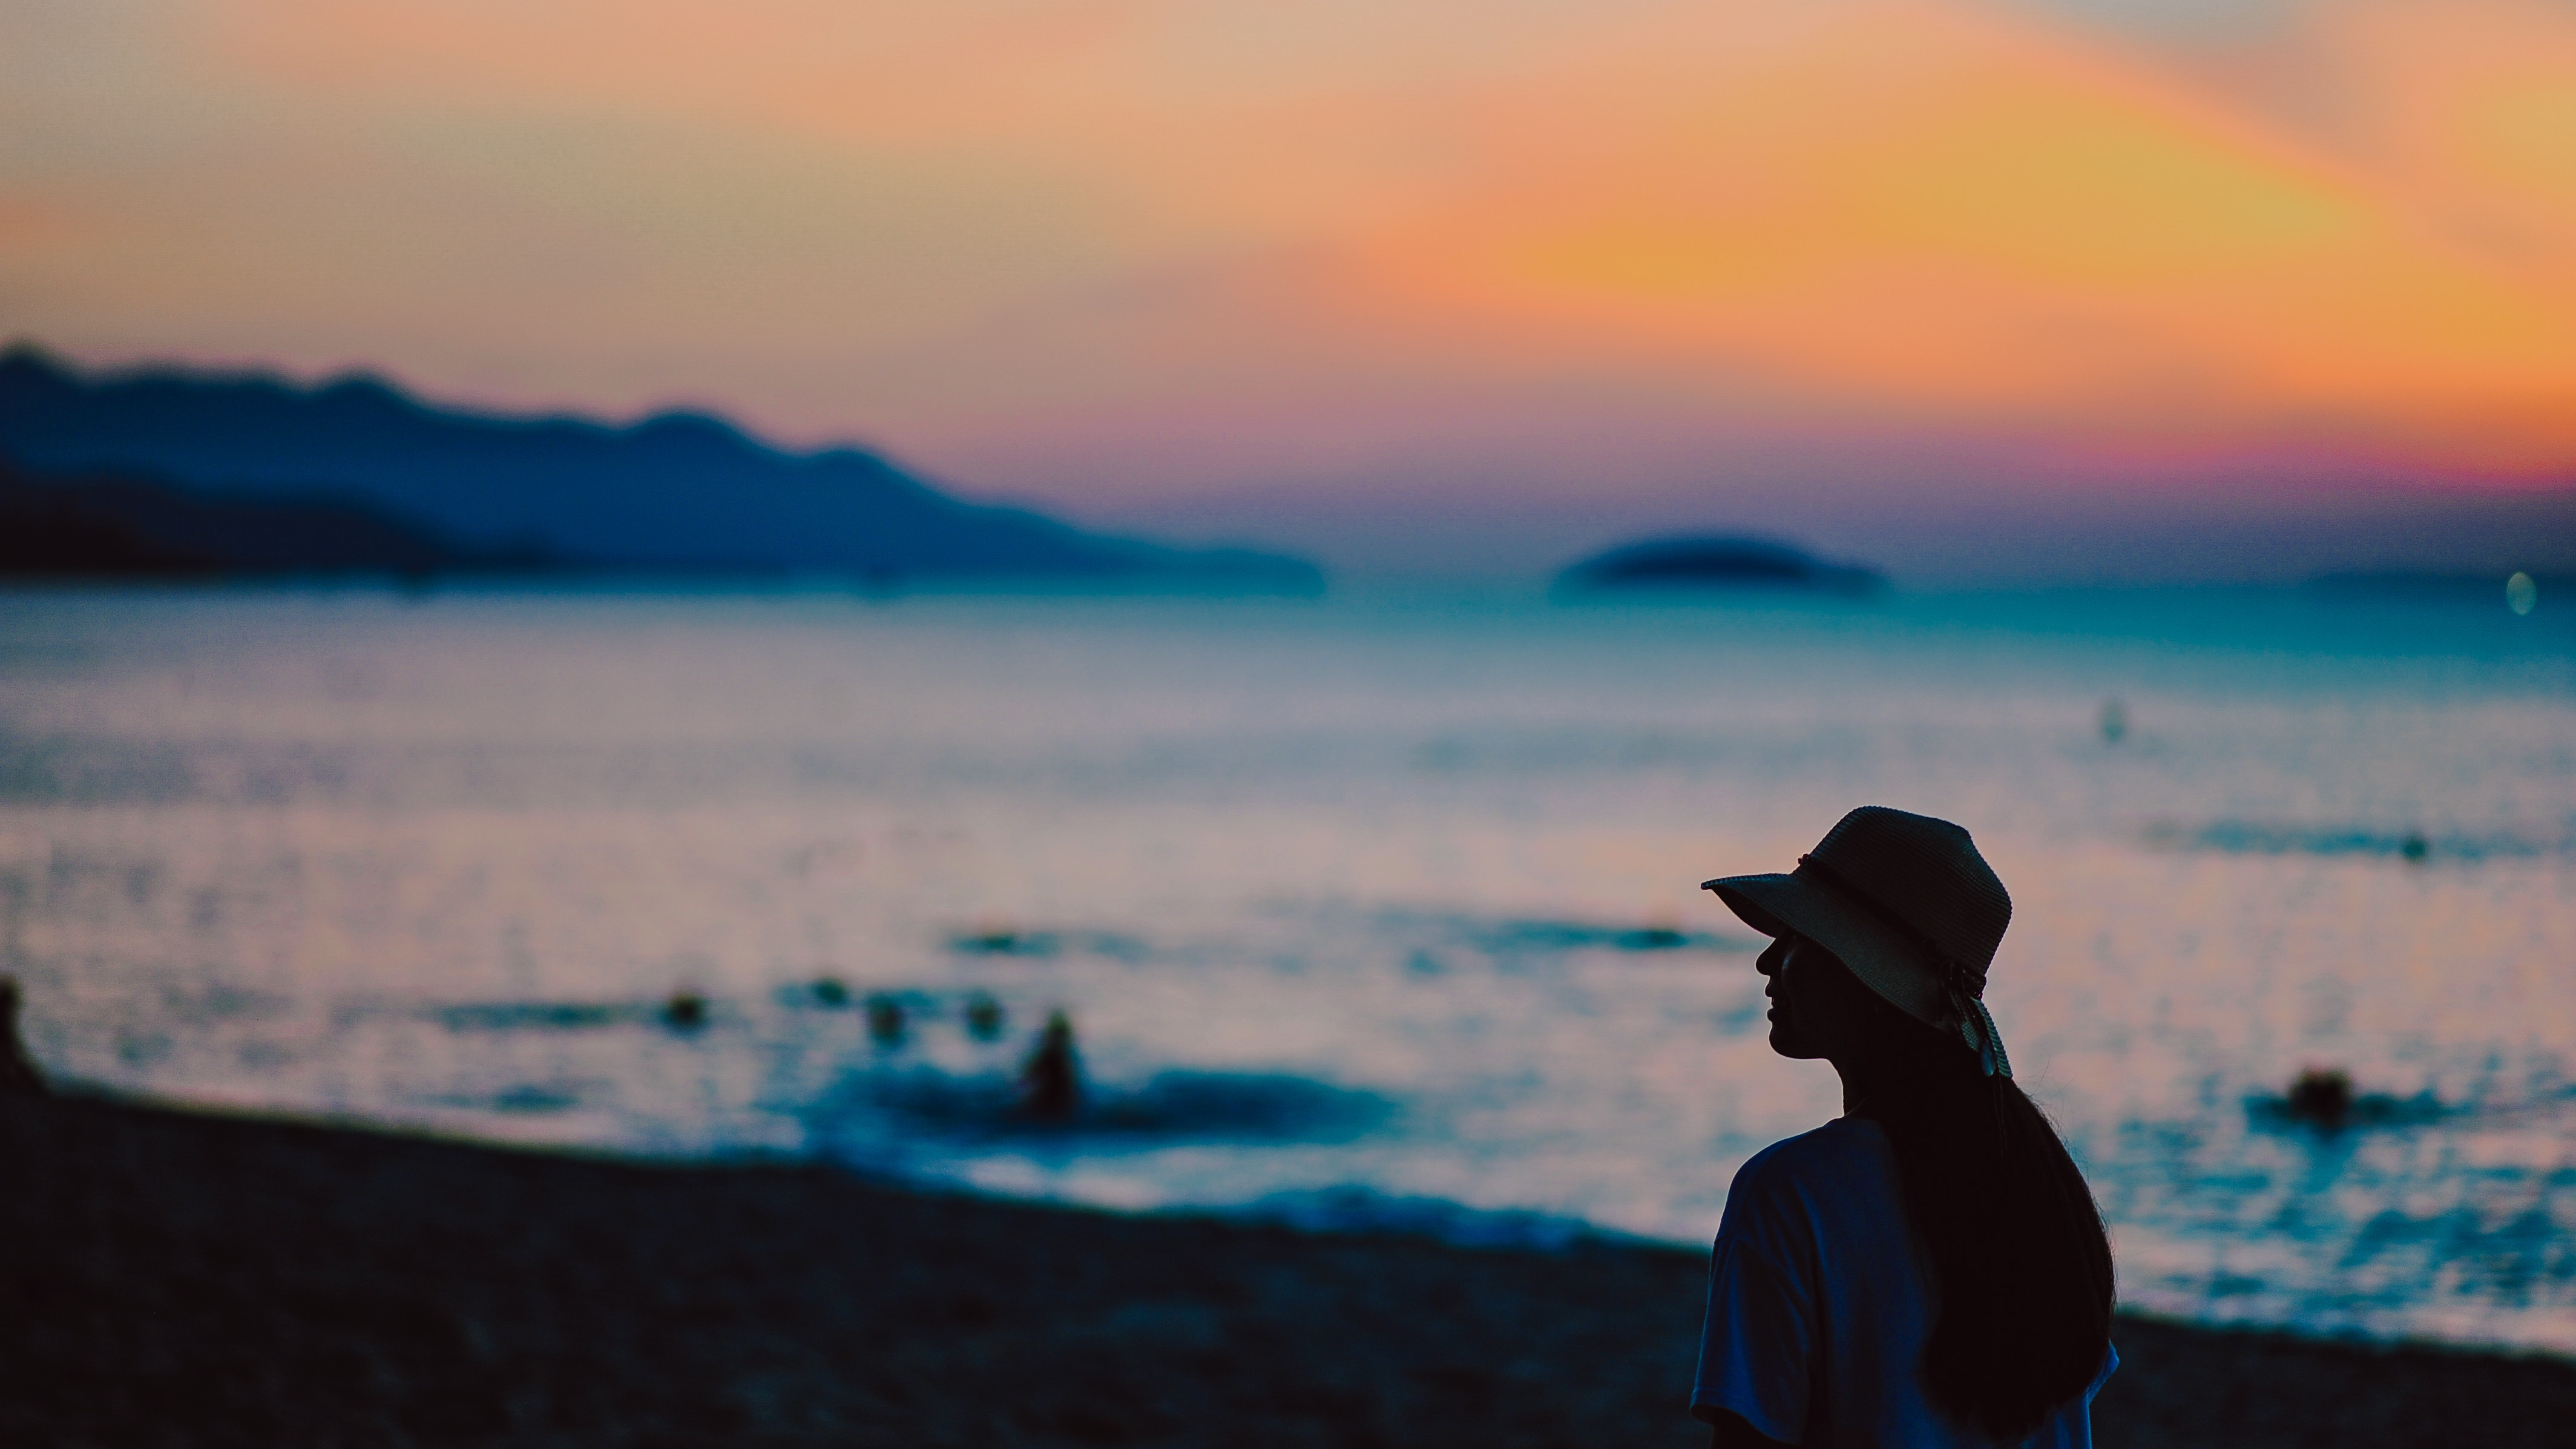 Photography of a person during dawn